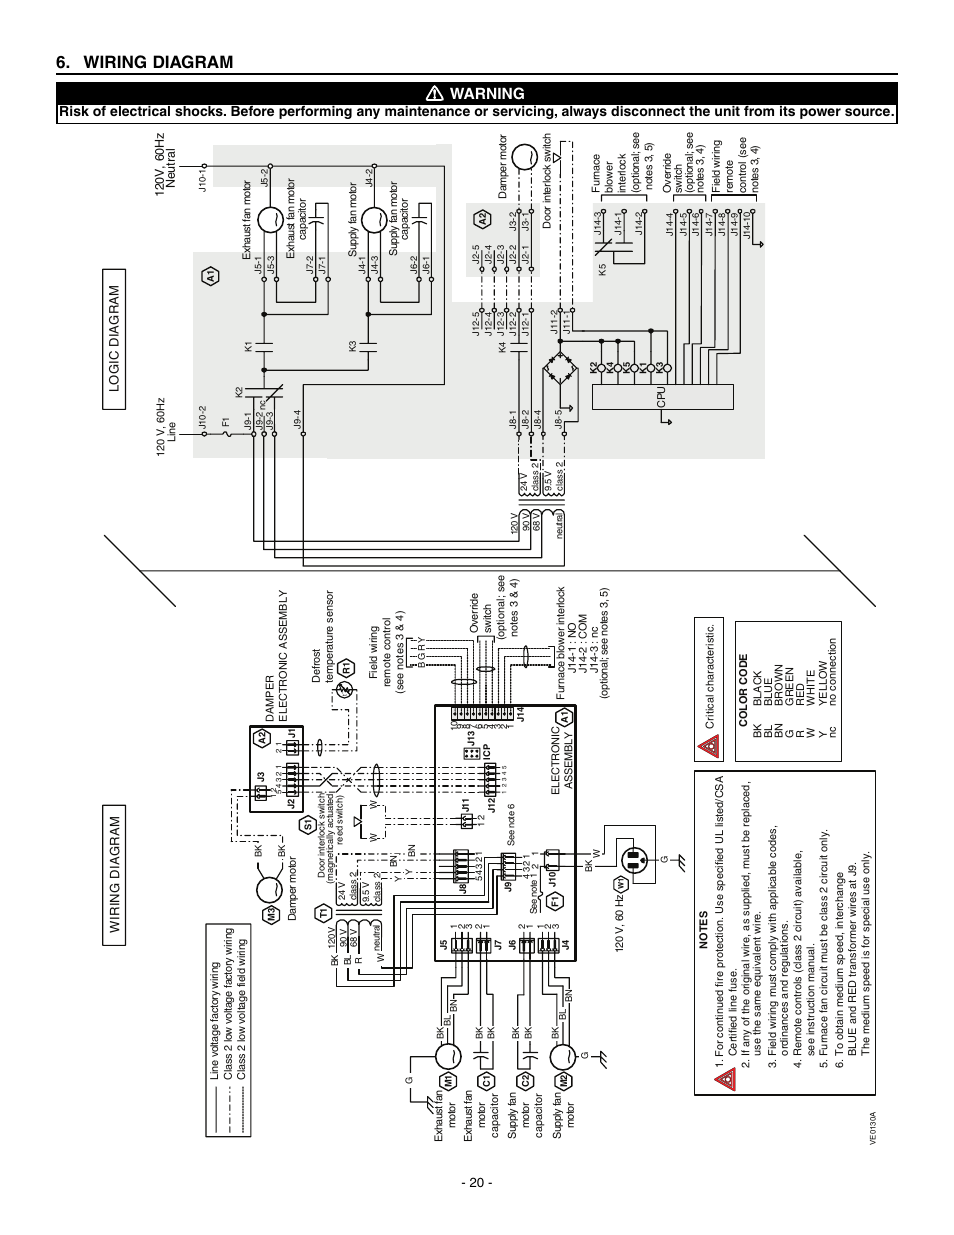 Wiring Diagram  Warning  Wiring Diagram Logic Diagram